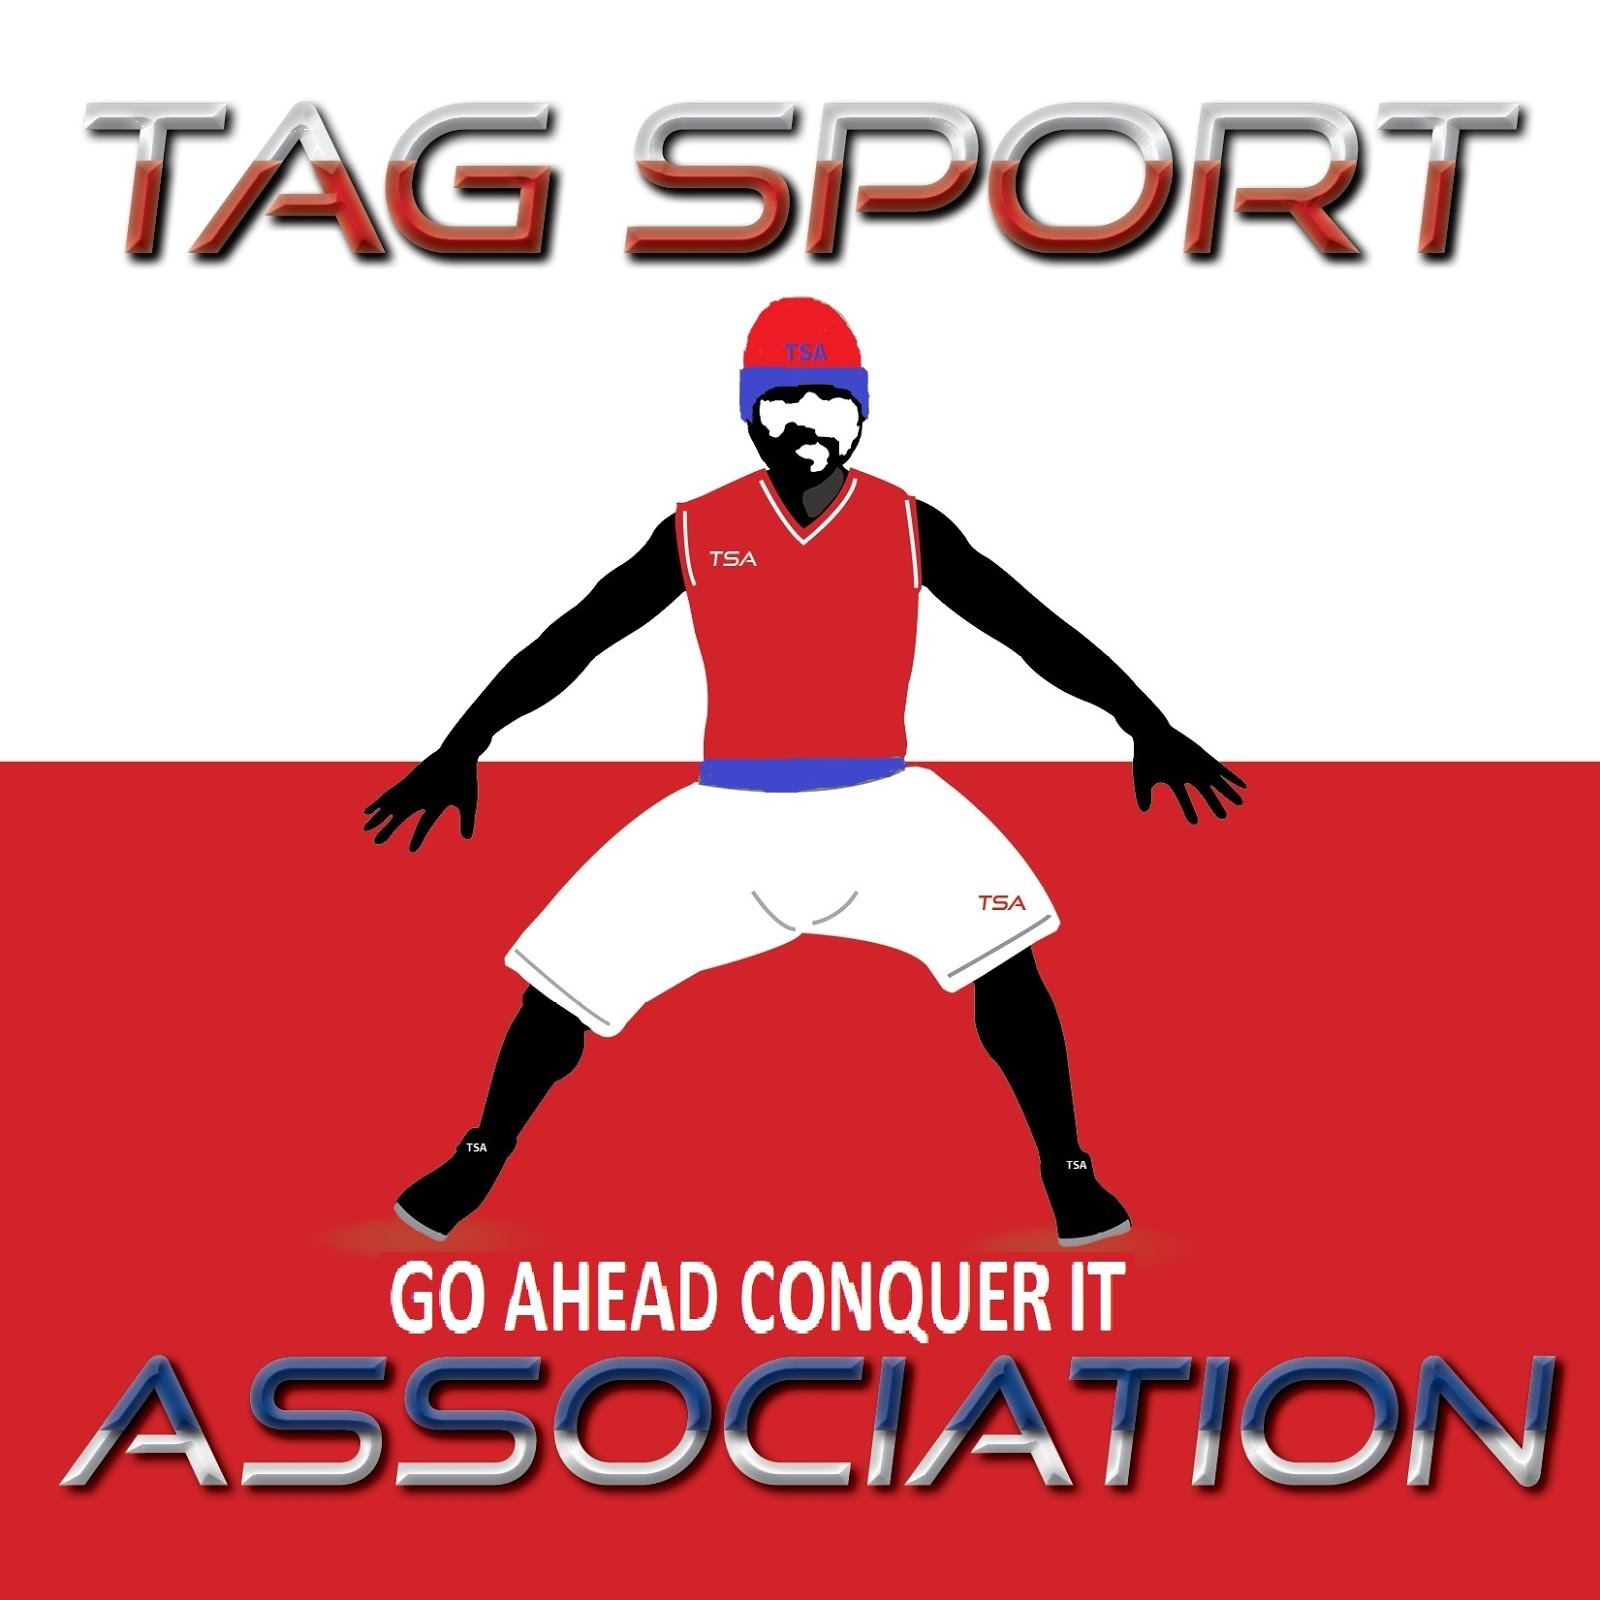 TAG SPORT ASSOCIATION   NO JUST ONLY TRY GO AHEAD AND CONQUER IT